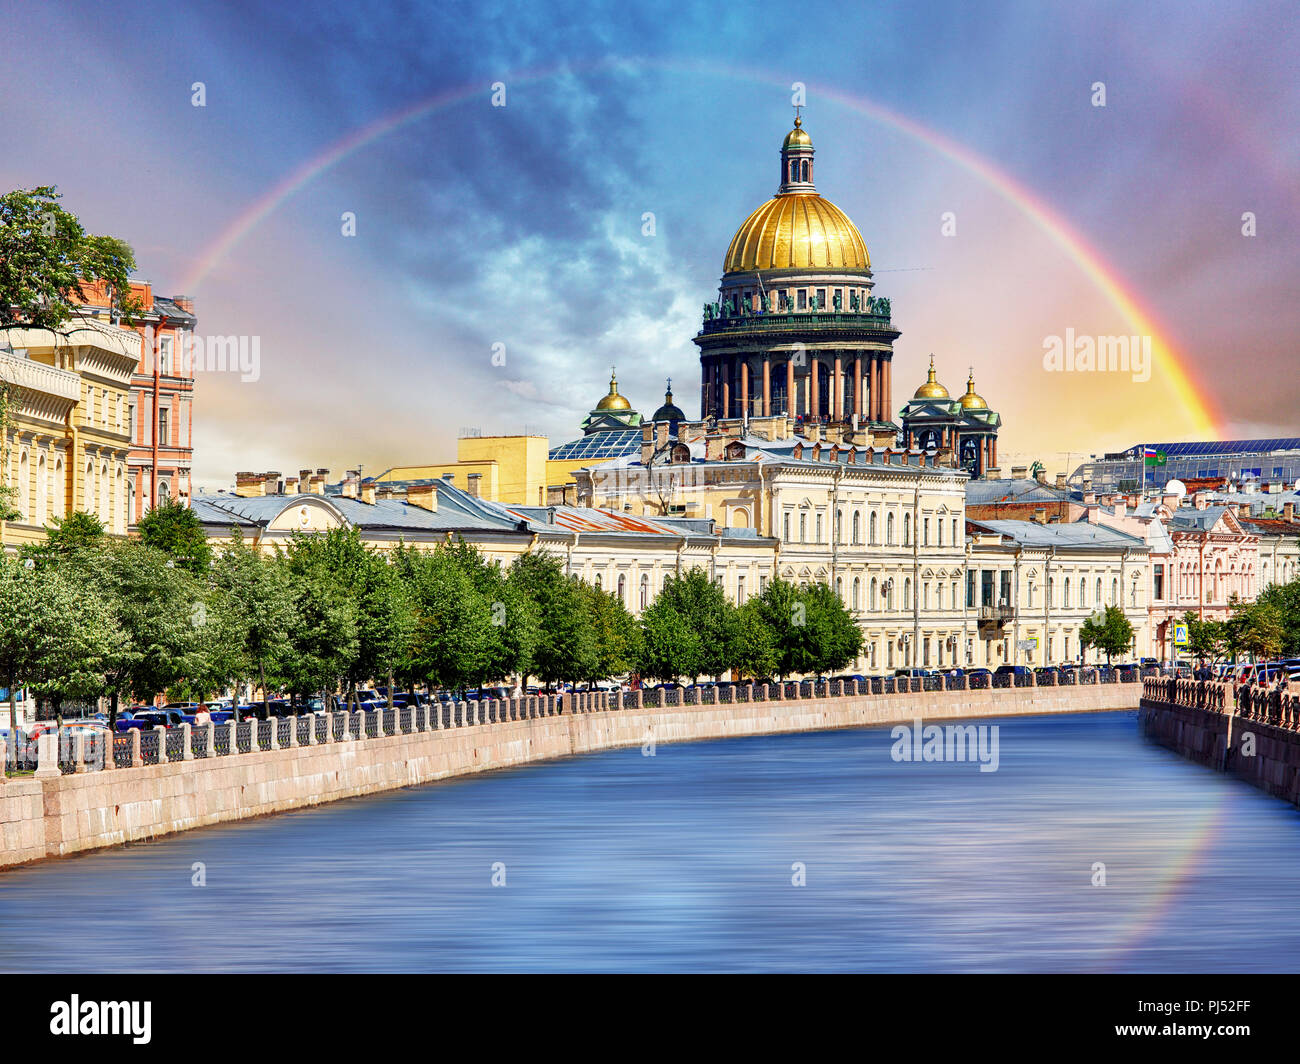 Saint Isaac Cathedral across Moyka river, St Petersburg, Russia - Stock Image